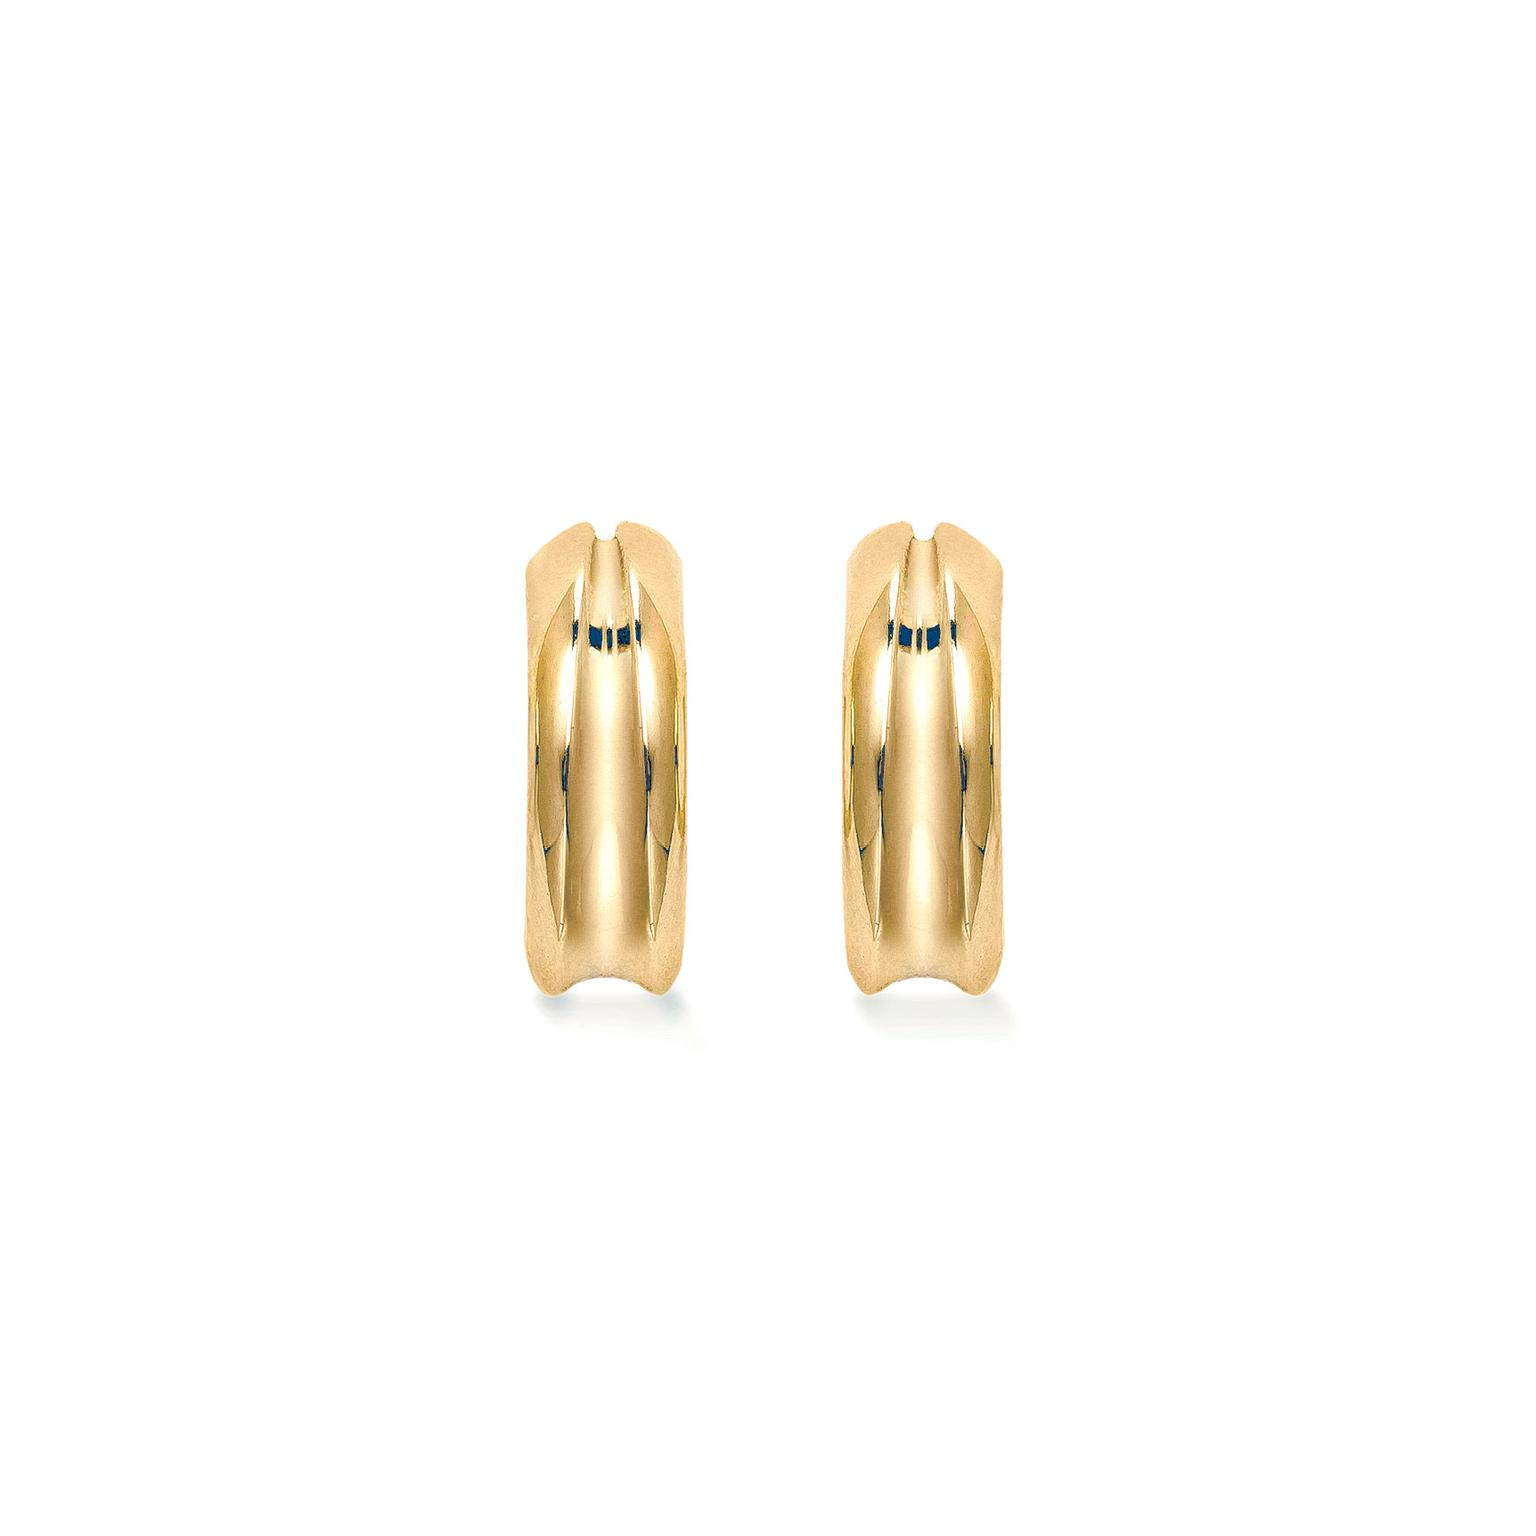 Mappin & Webb Wildfell yellow gold hoop earrings